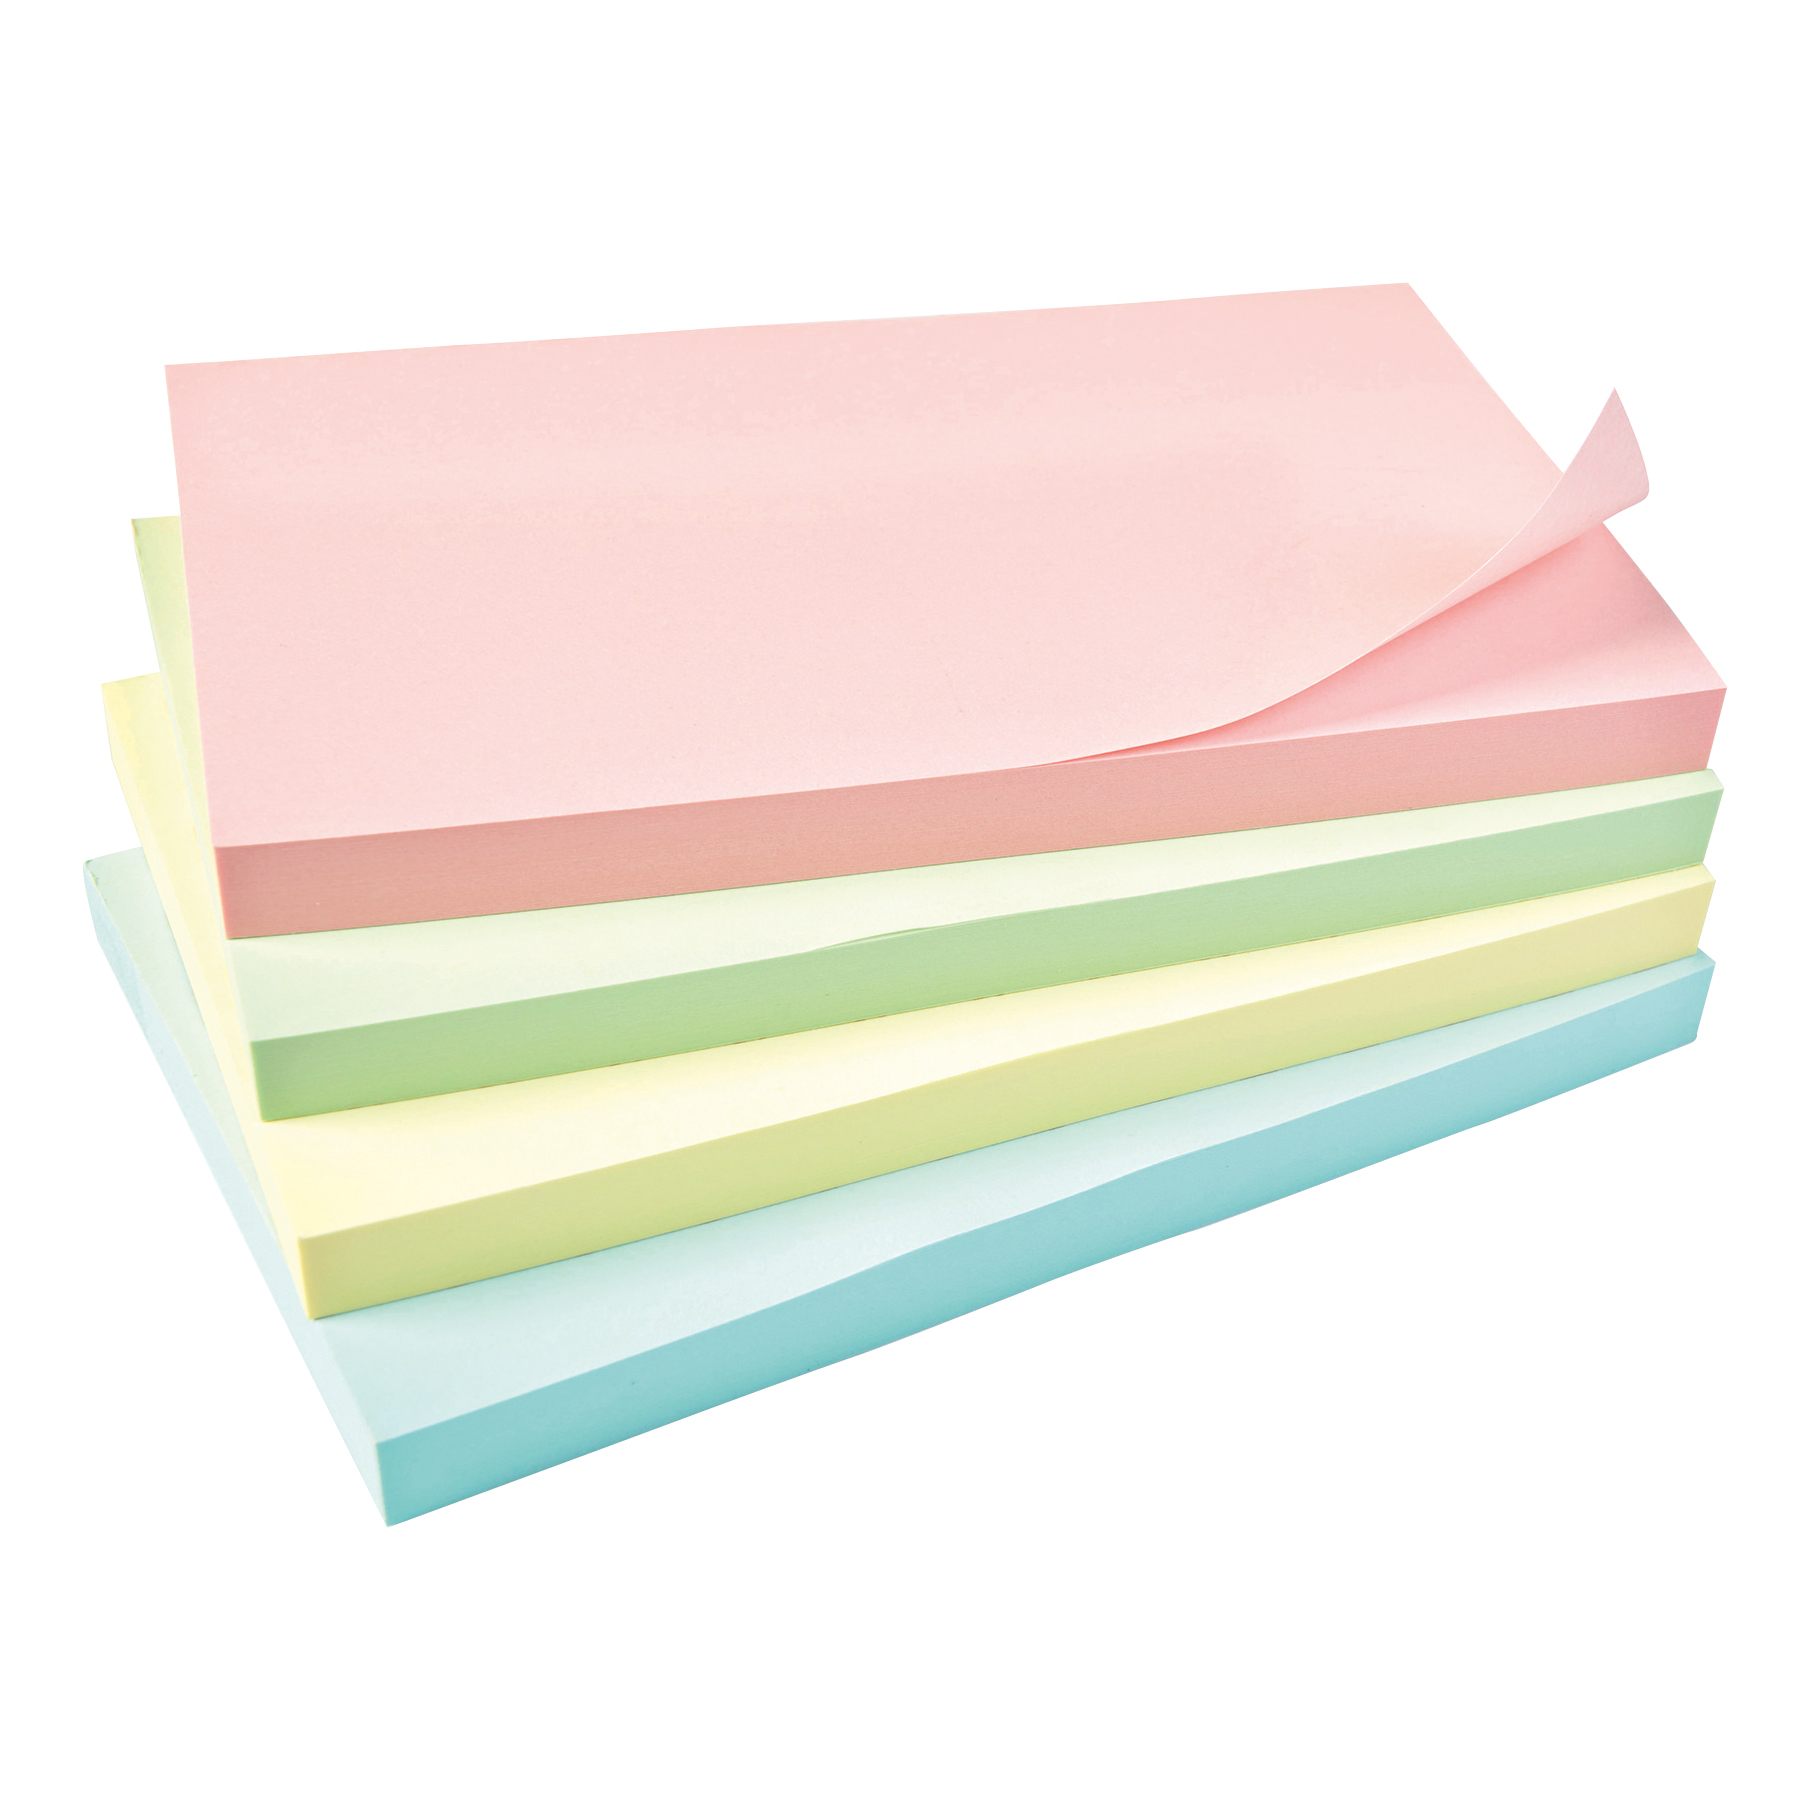 Coloured 5 Star Office Re-Move Notes Repositionable Pastel Pad of 100 Sheets 76x127mm Assorted Pack 12